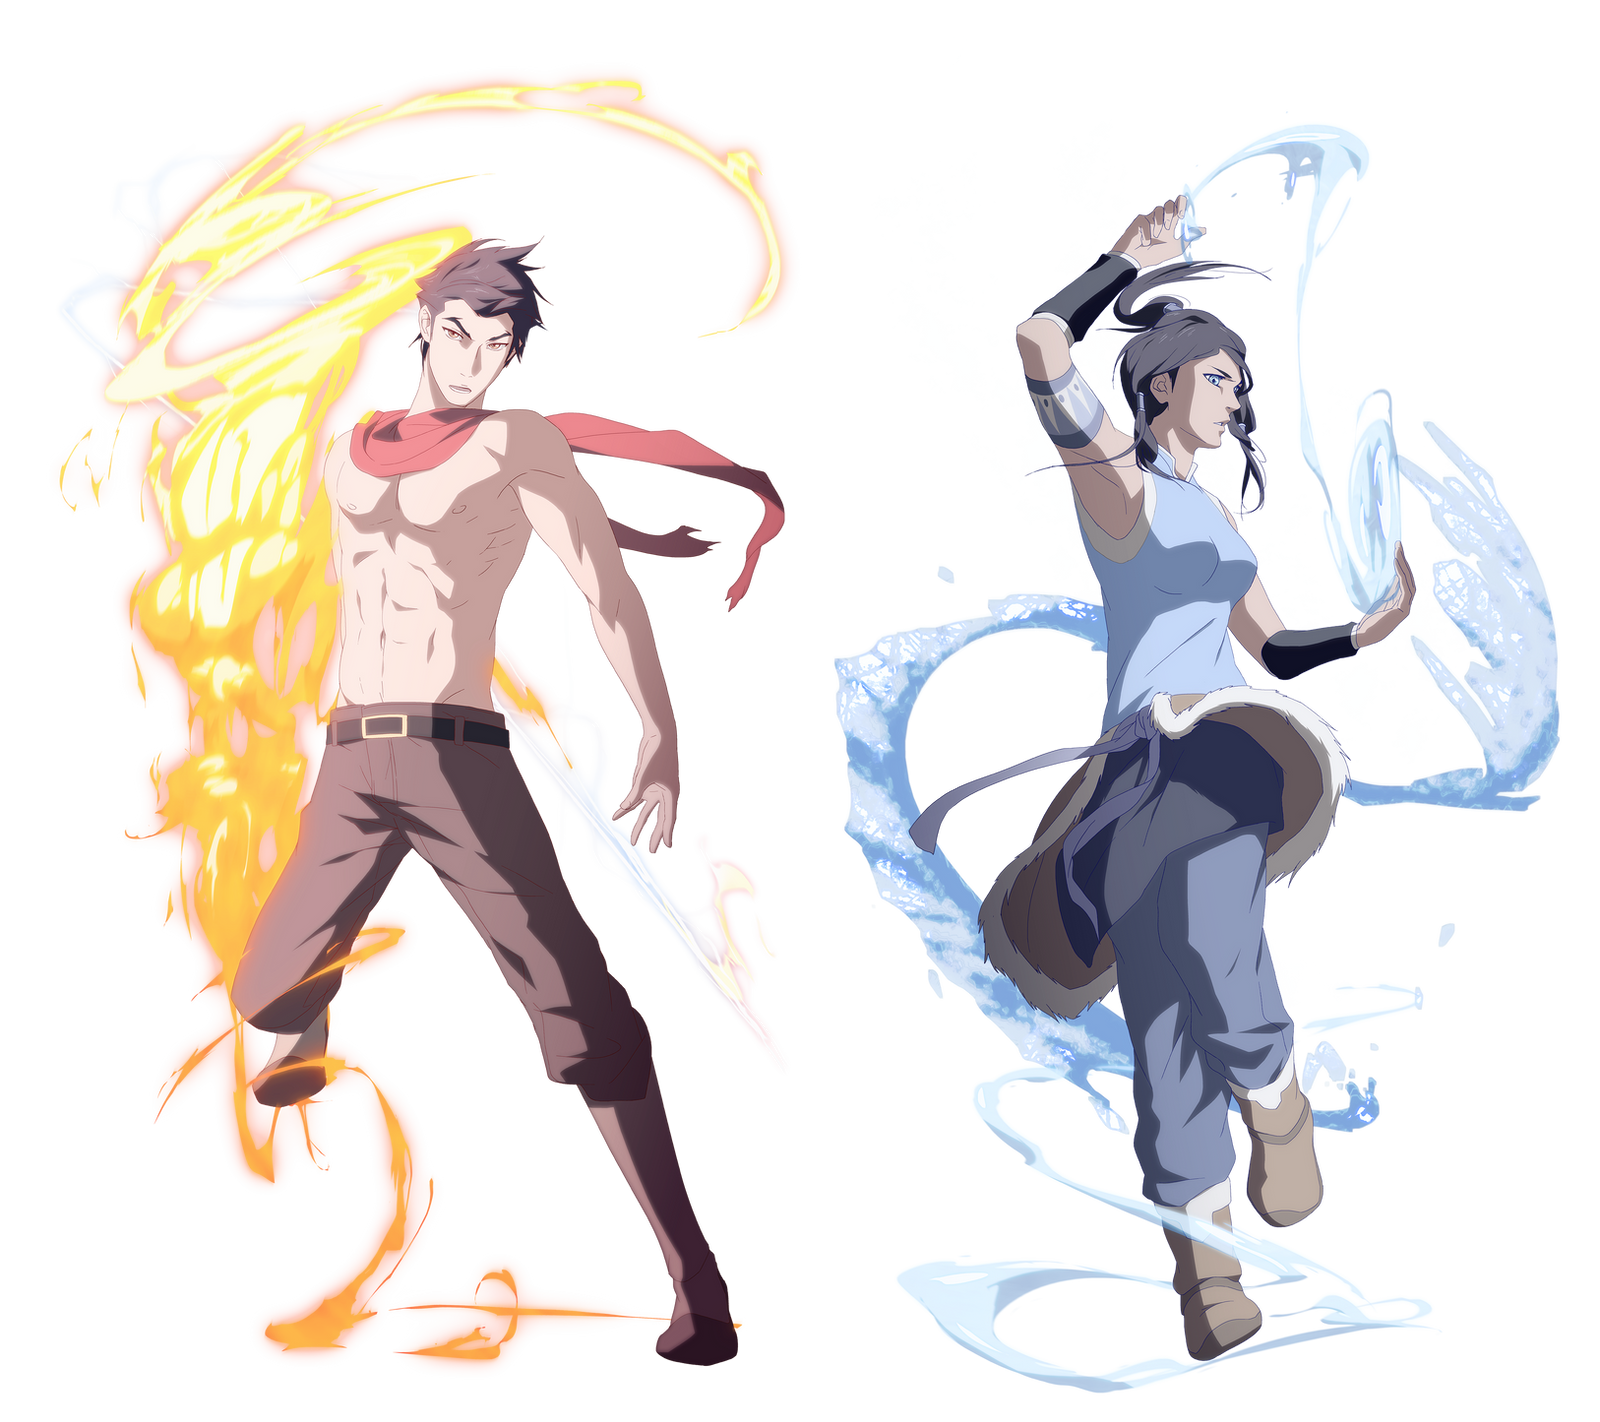 Legend of Korra by Keh-ven